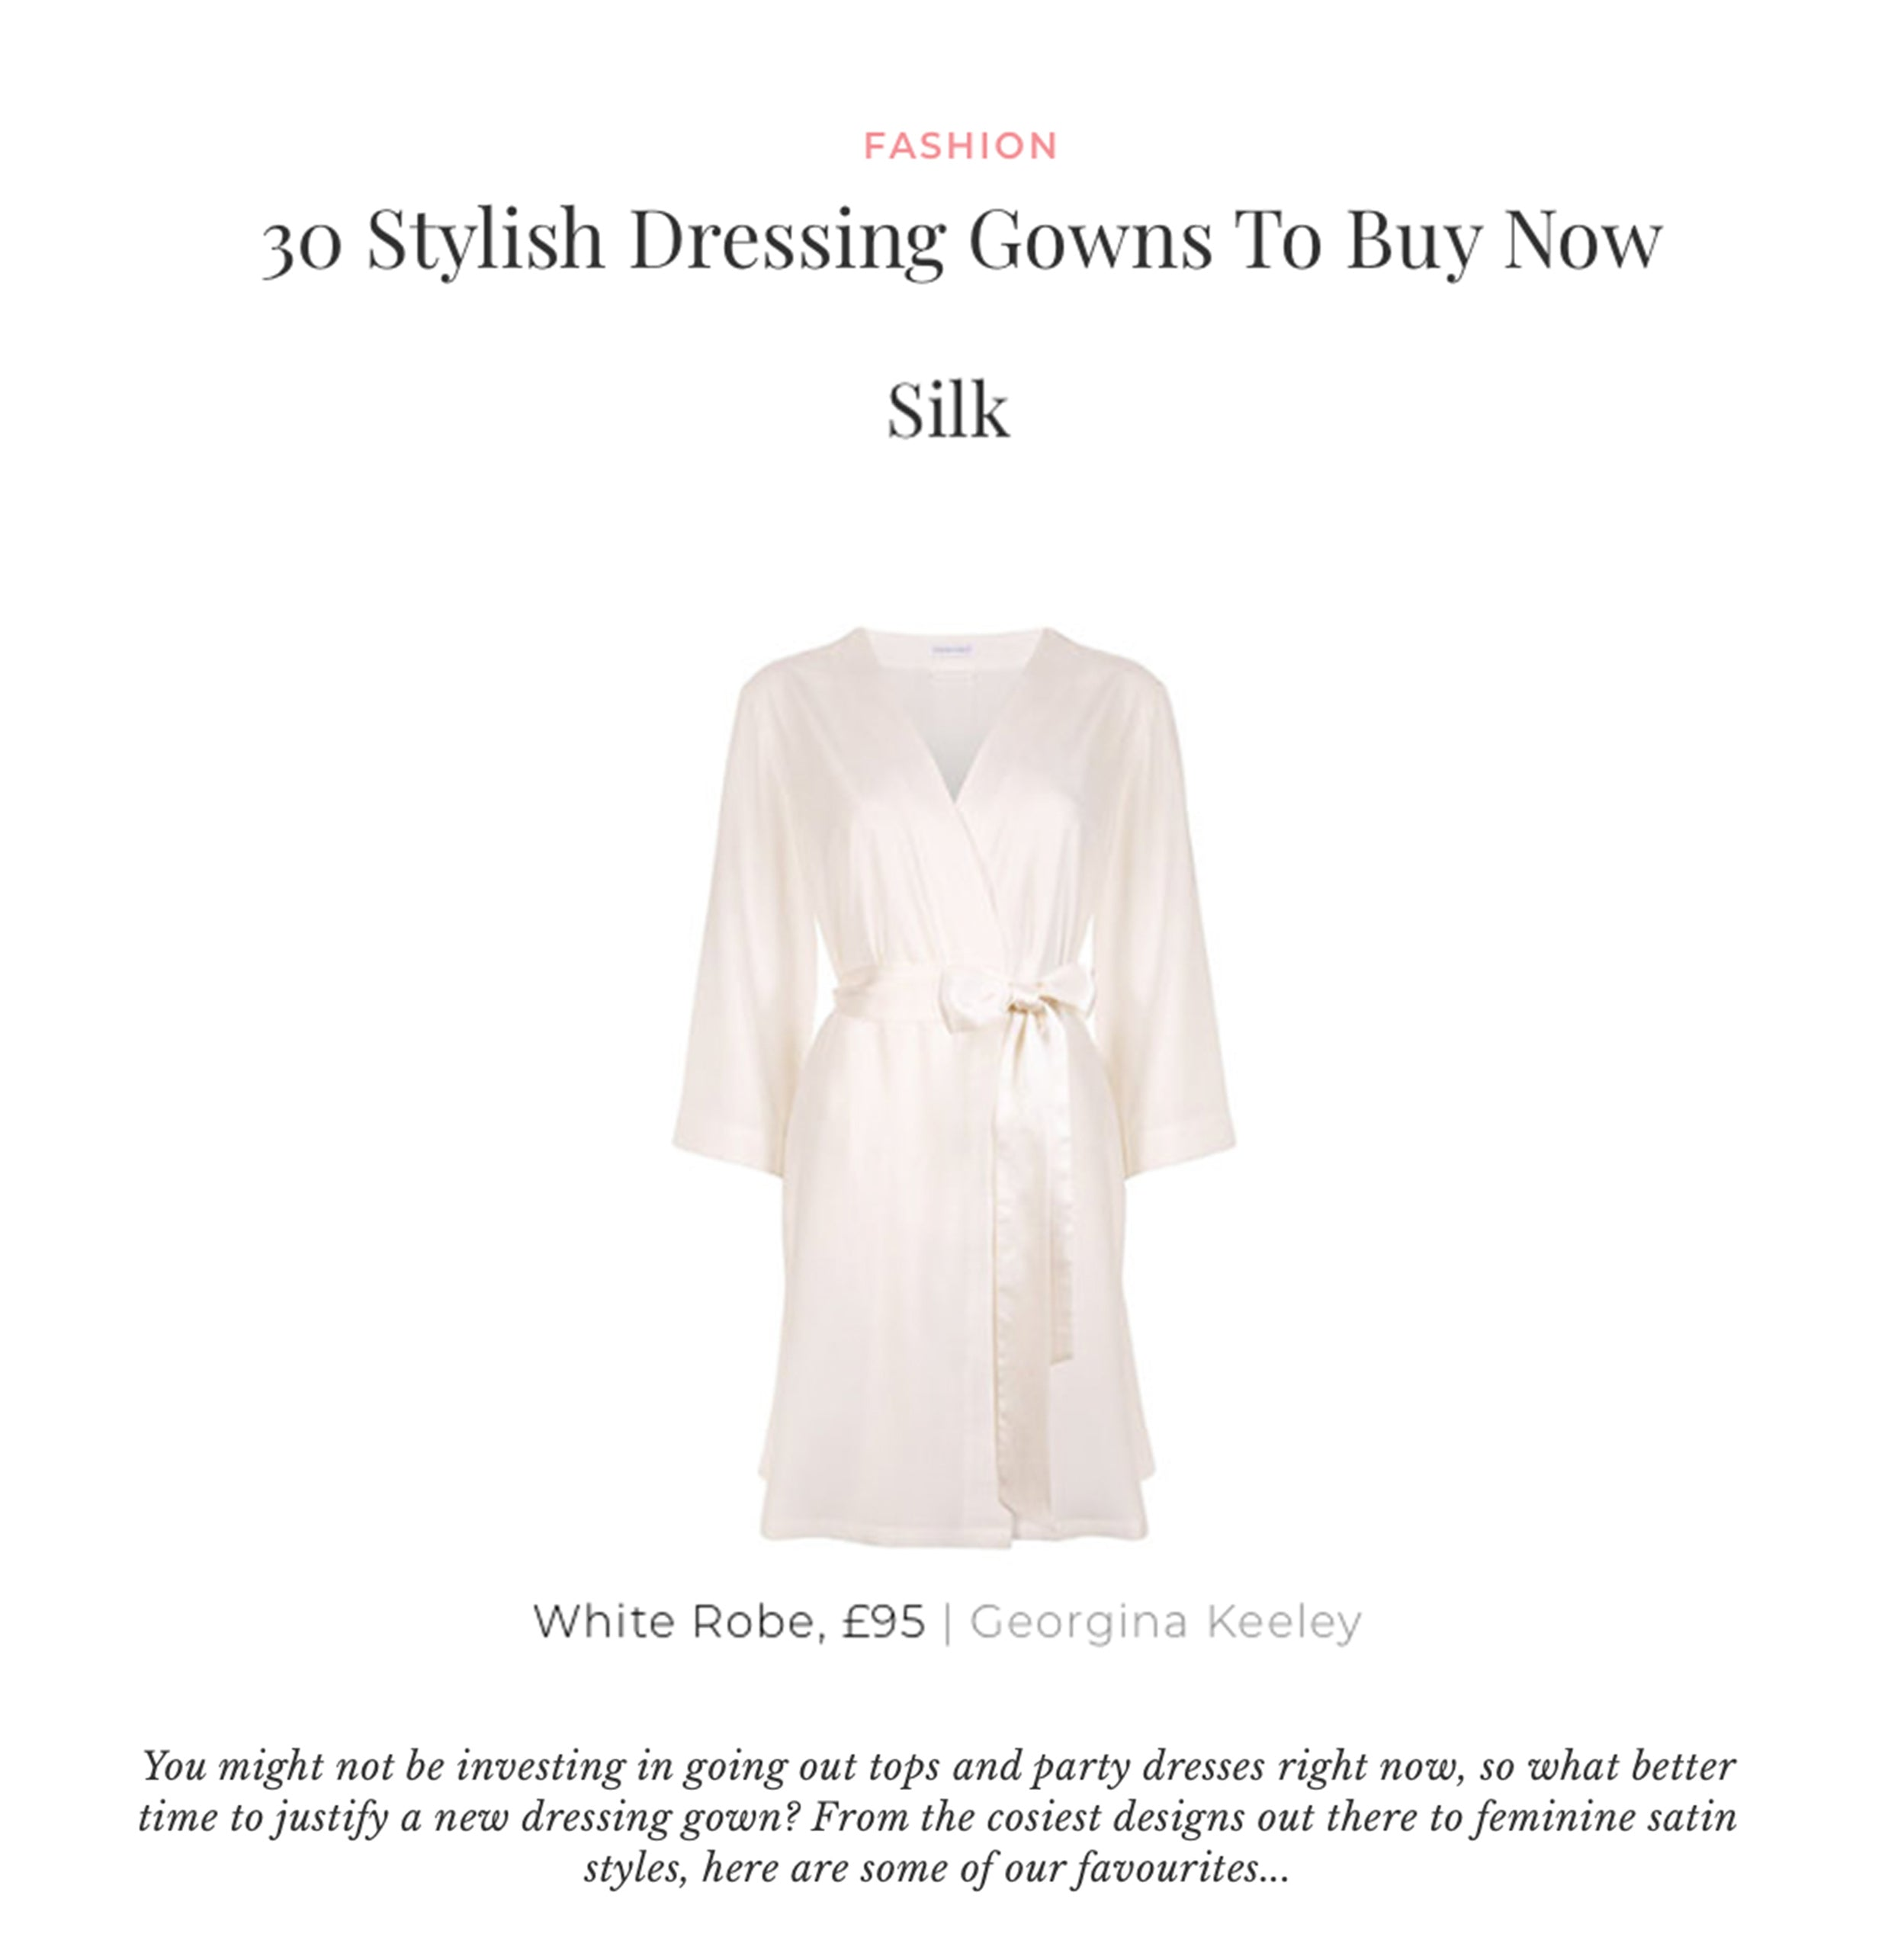 luxury white robe georgina keeley on sheerluxe